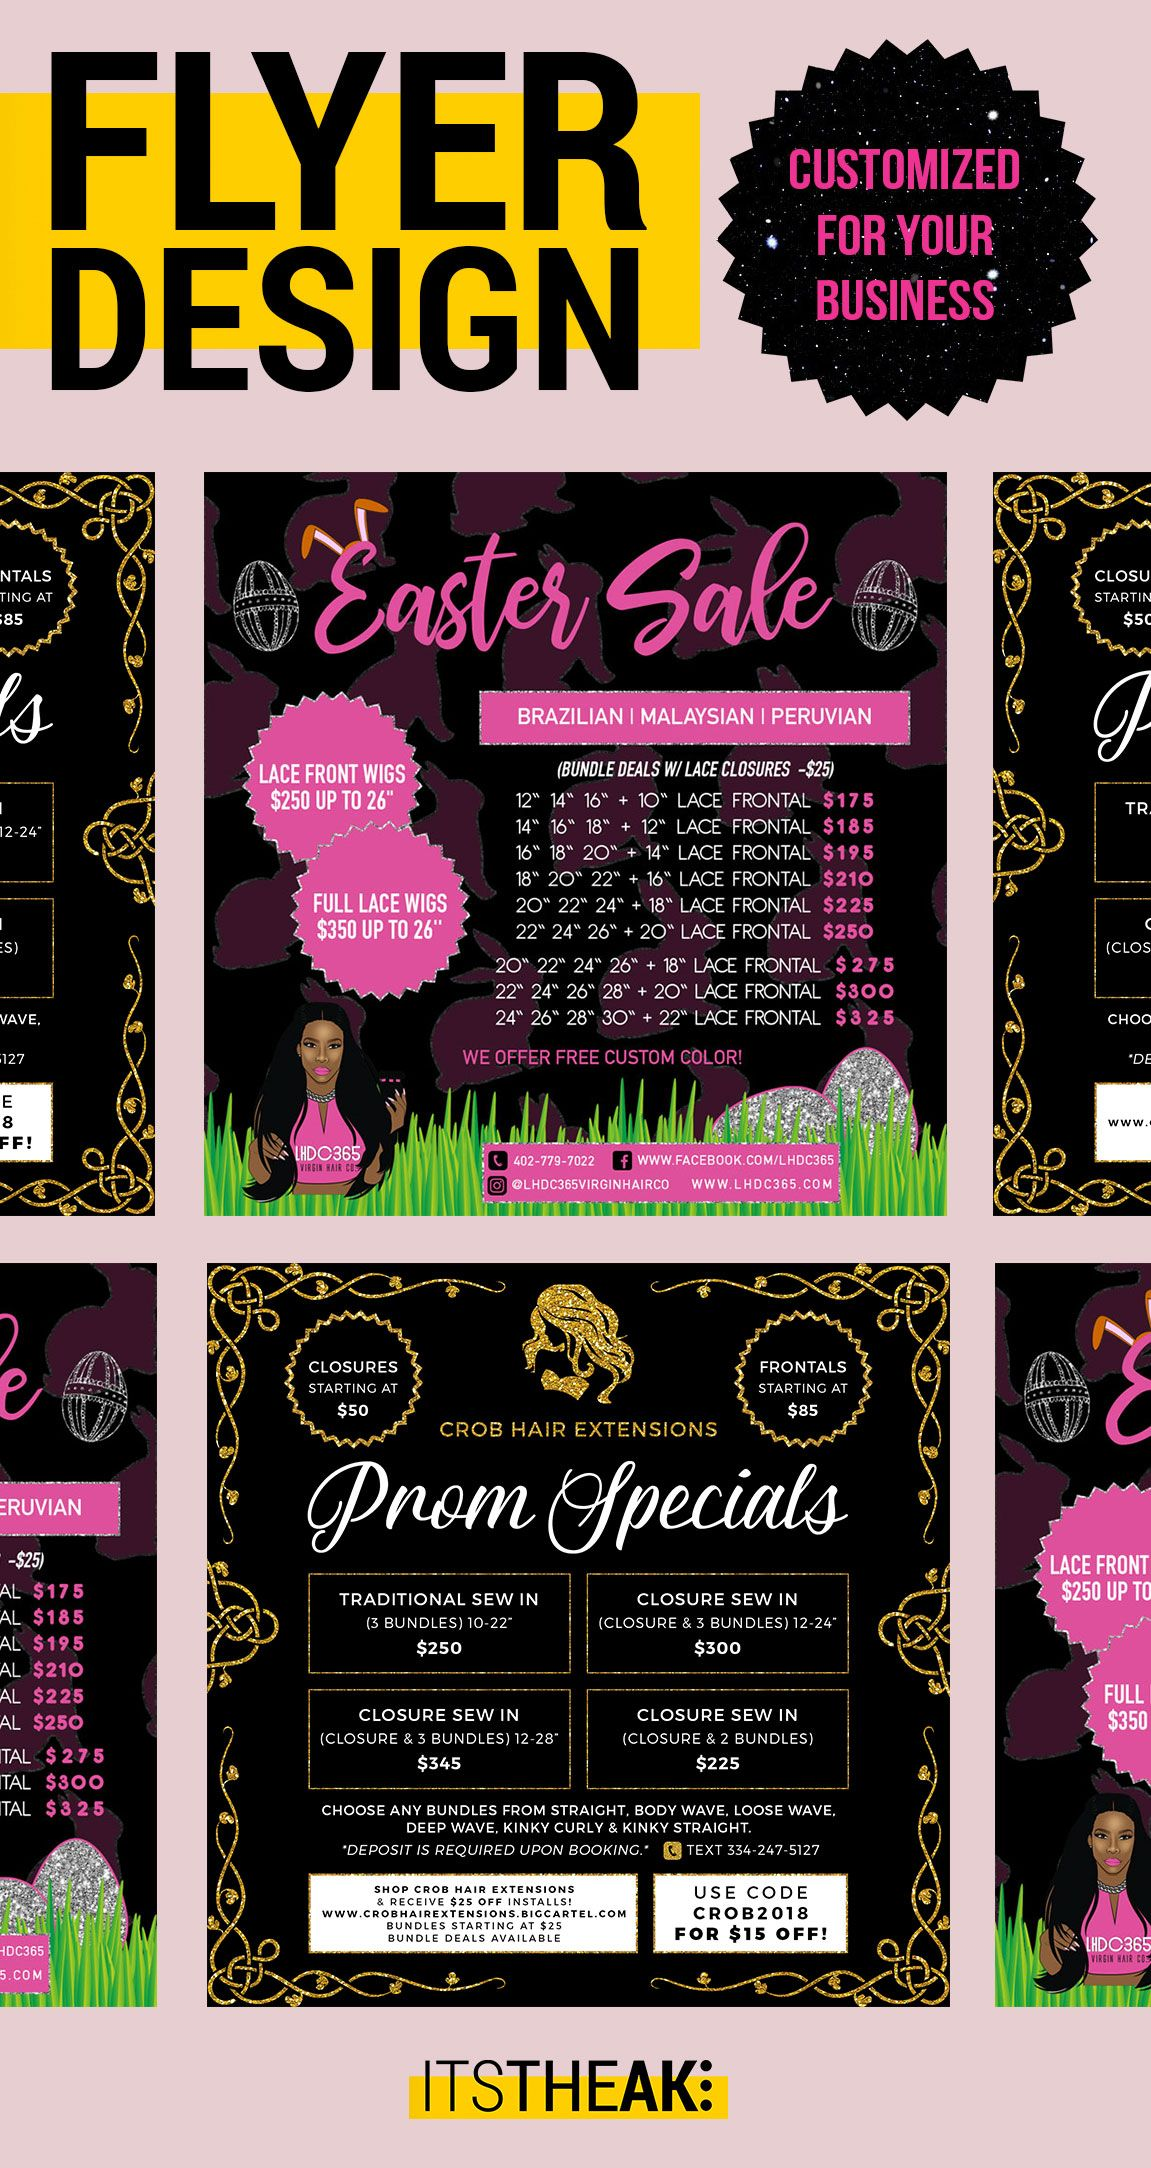 custom flyer designs hair extension business bundle deals bundles